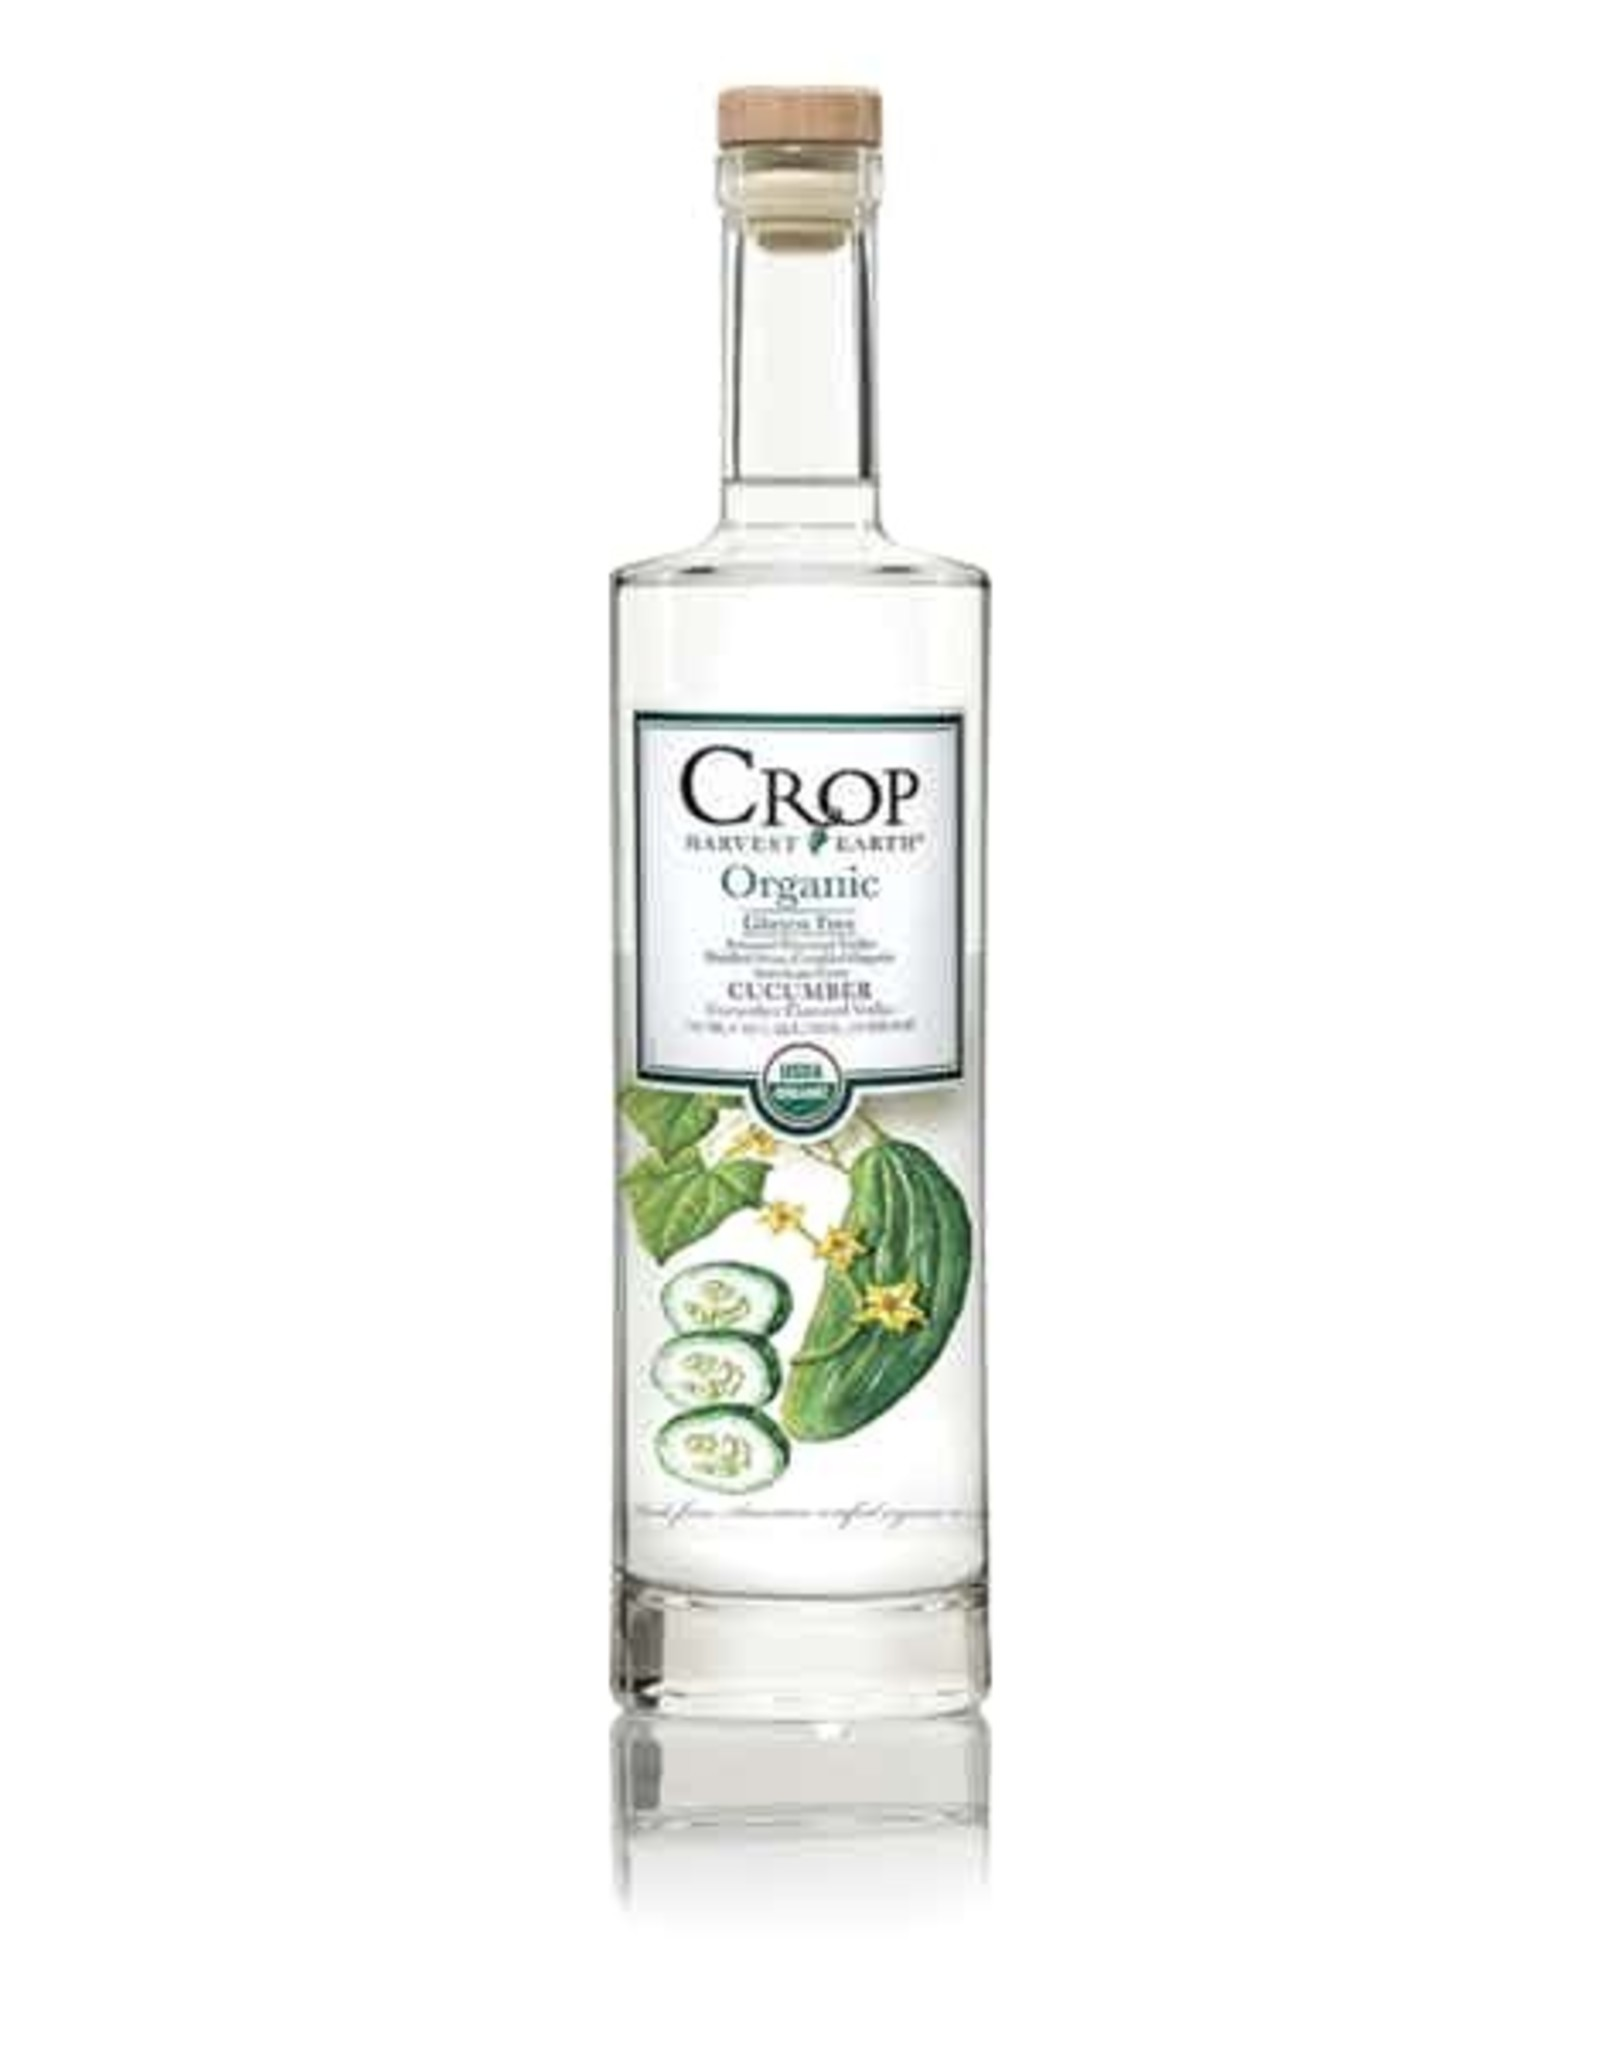 USA Crop Organic Cucumber Vodka